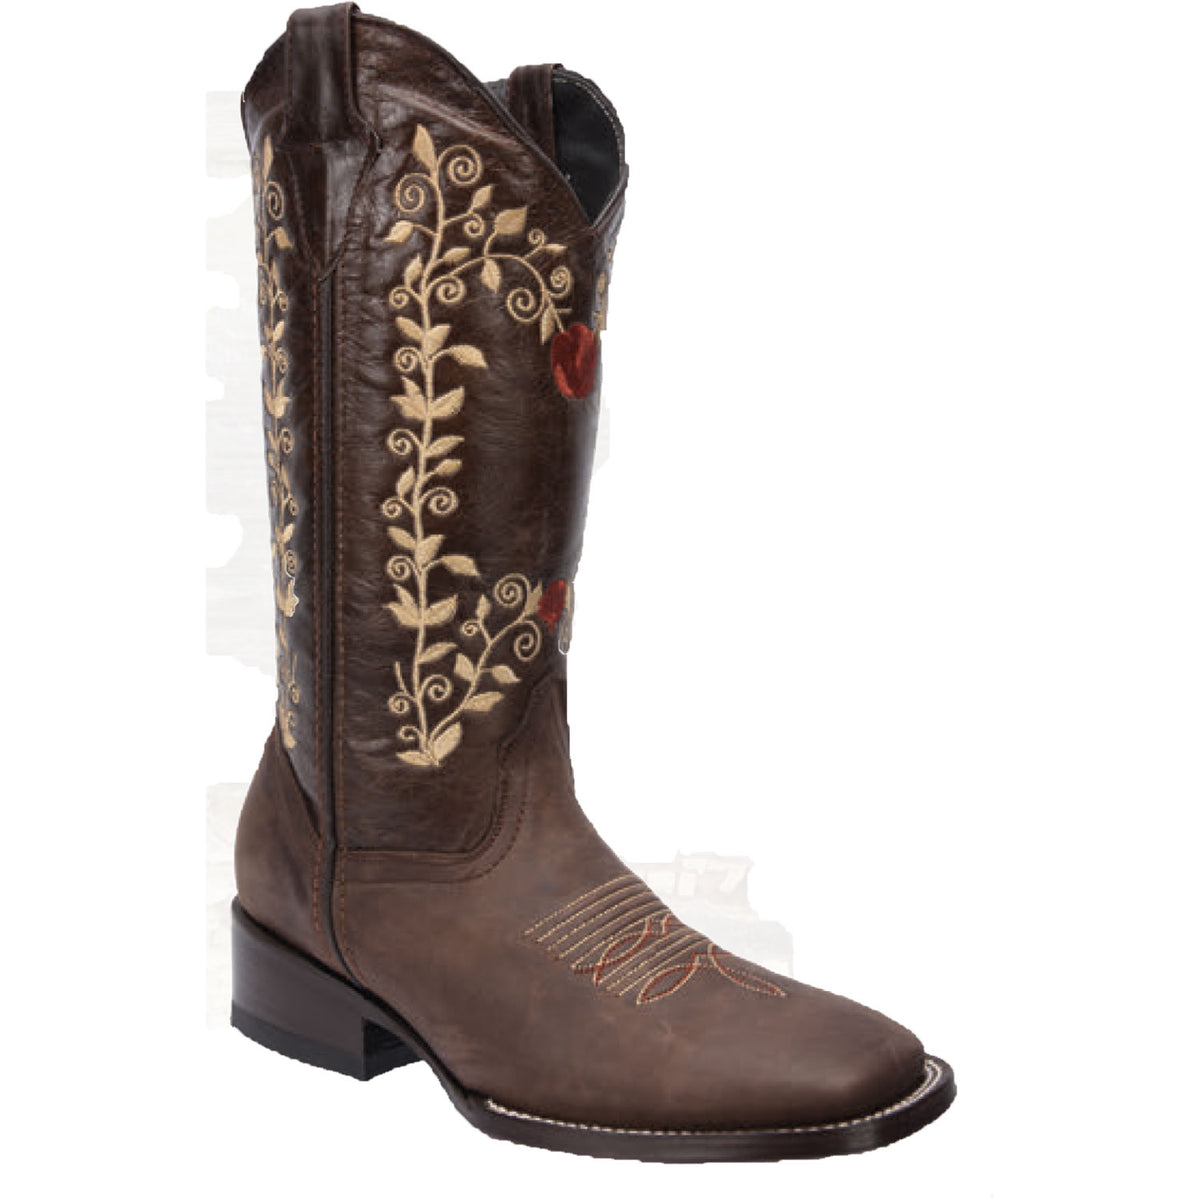 Genuine Leather Boot WD539-542